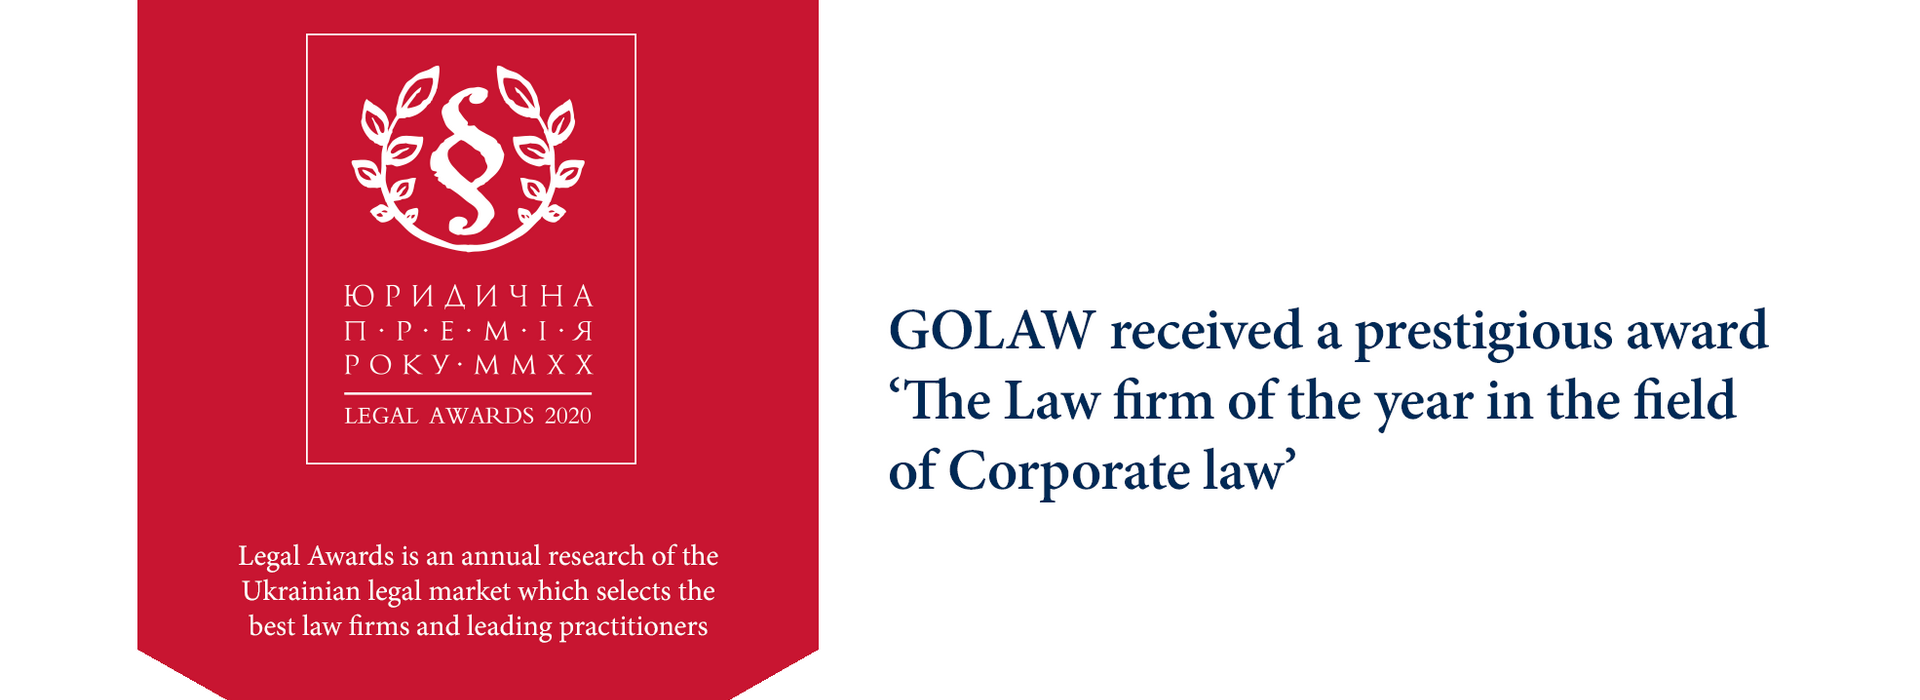 GOLAW Has Been Recognised as the Best Ukrainian Law Firm in the Field of Corporate Law